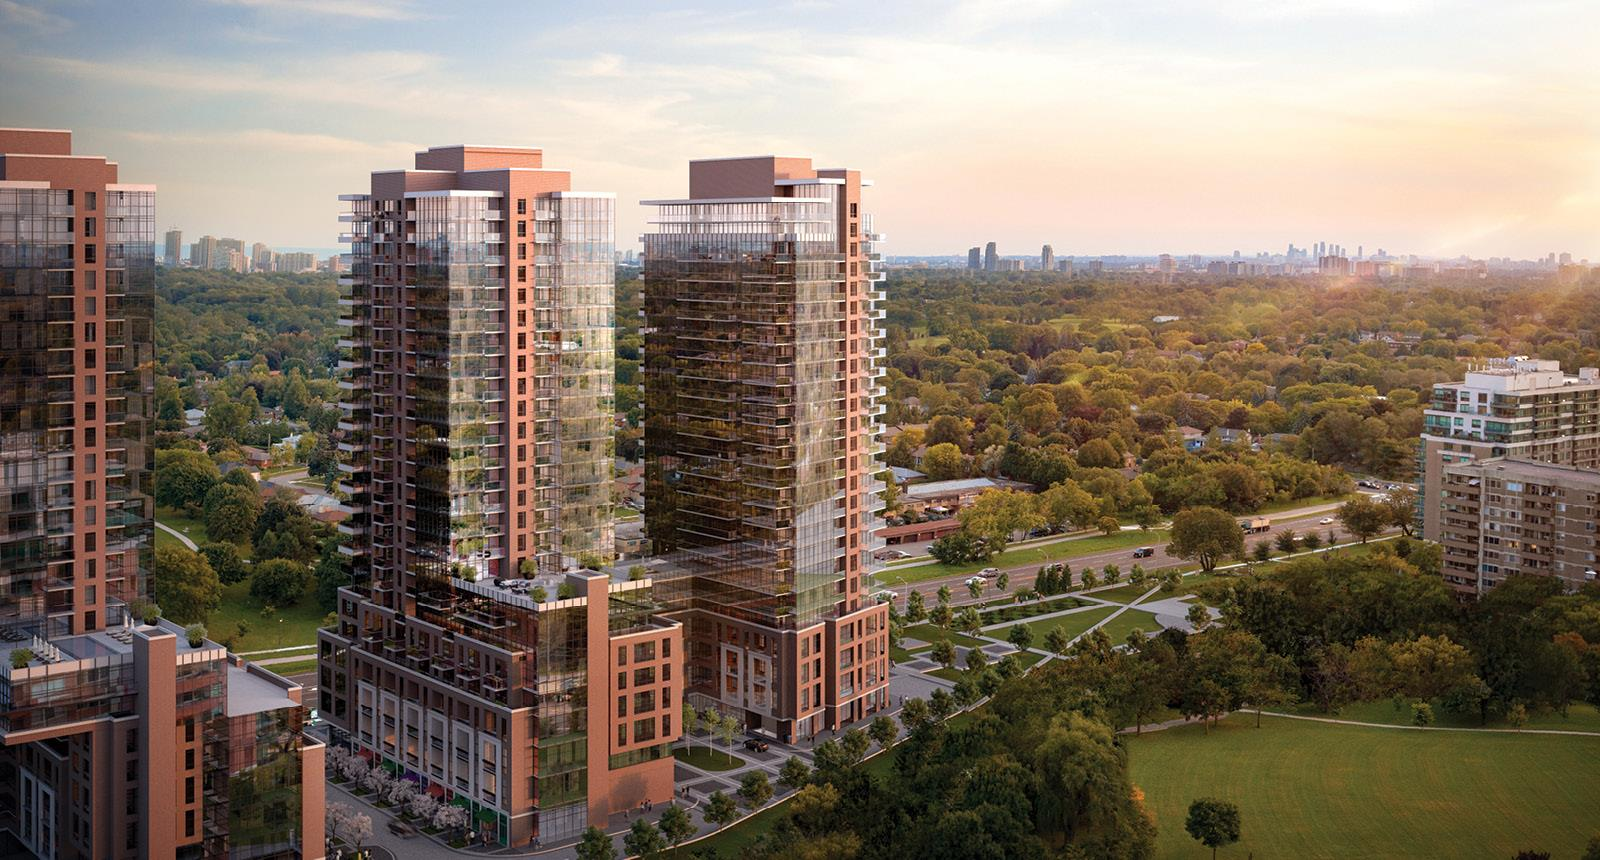 Notting Hill Condos Rendering